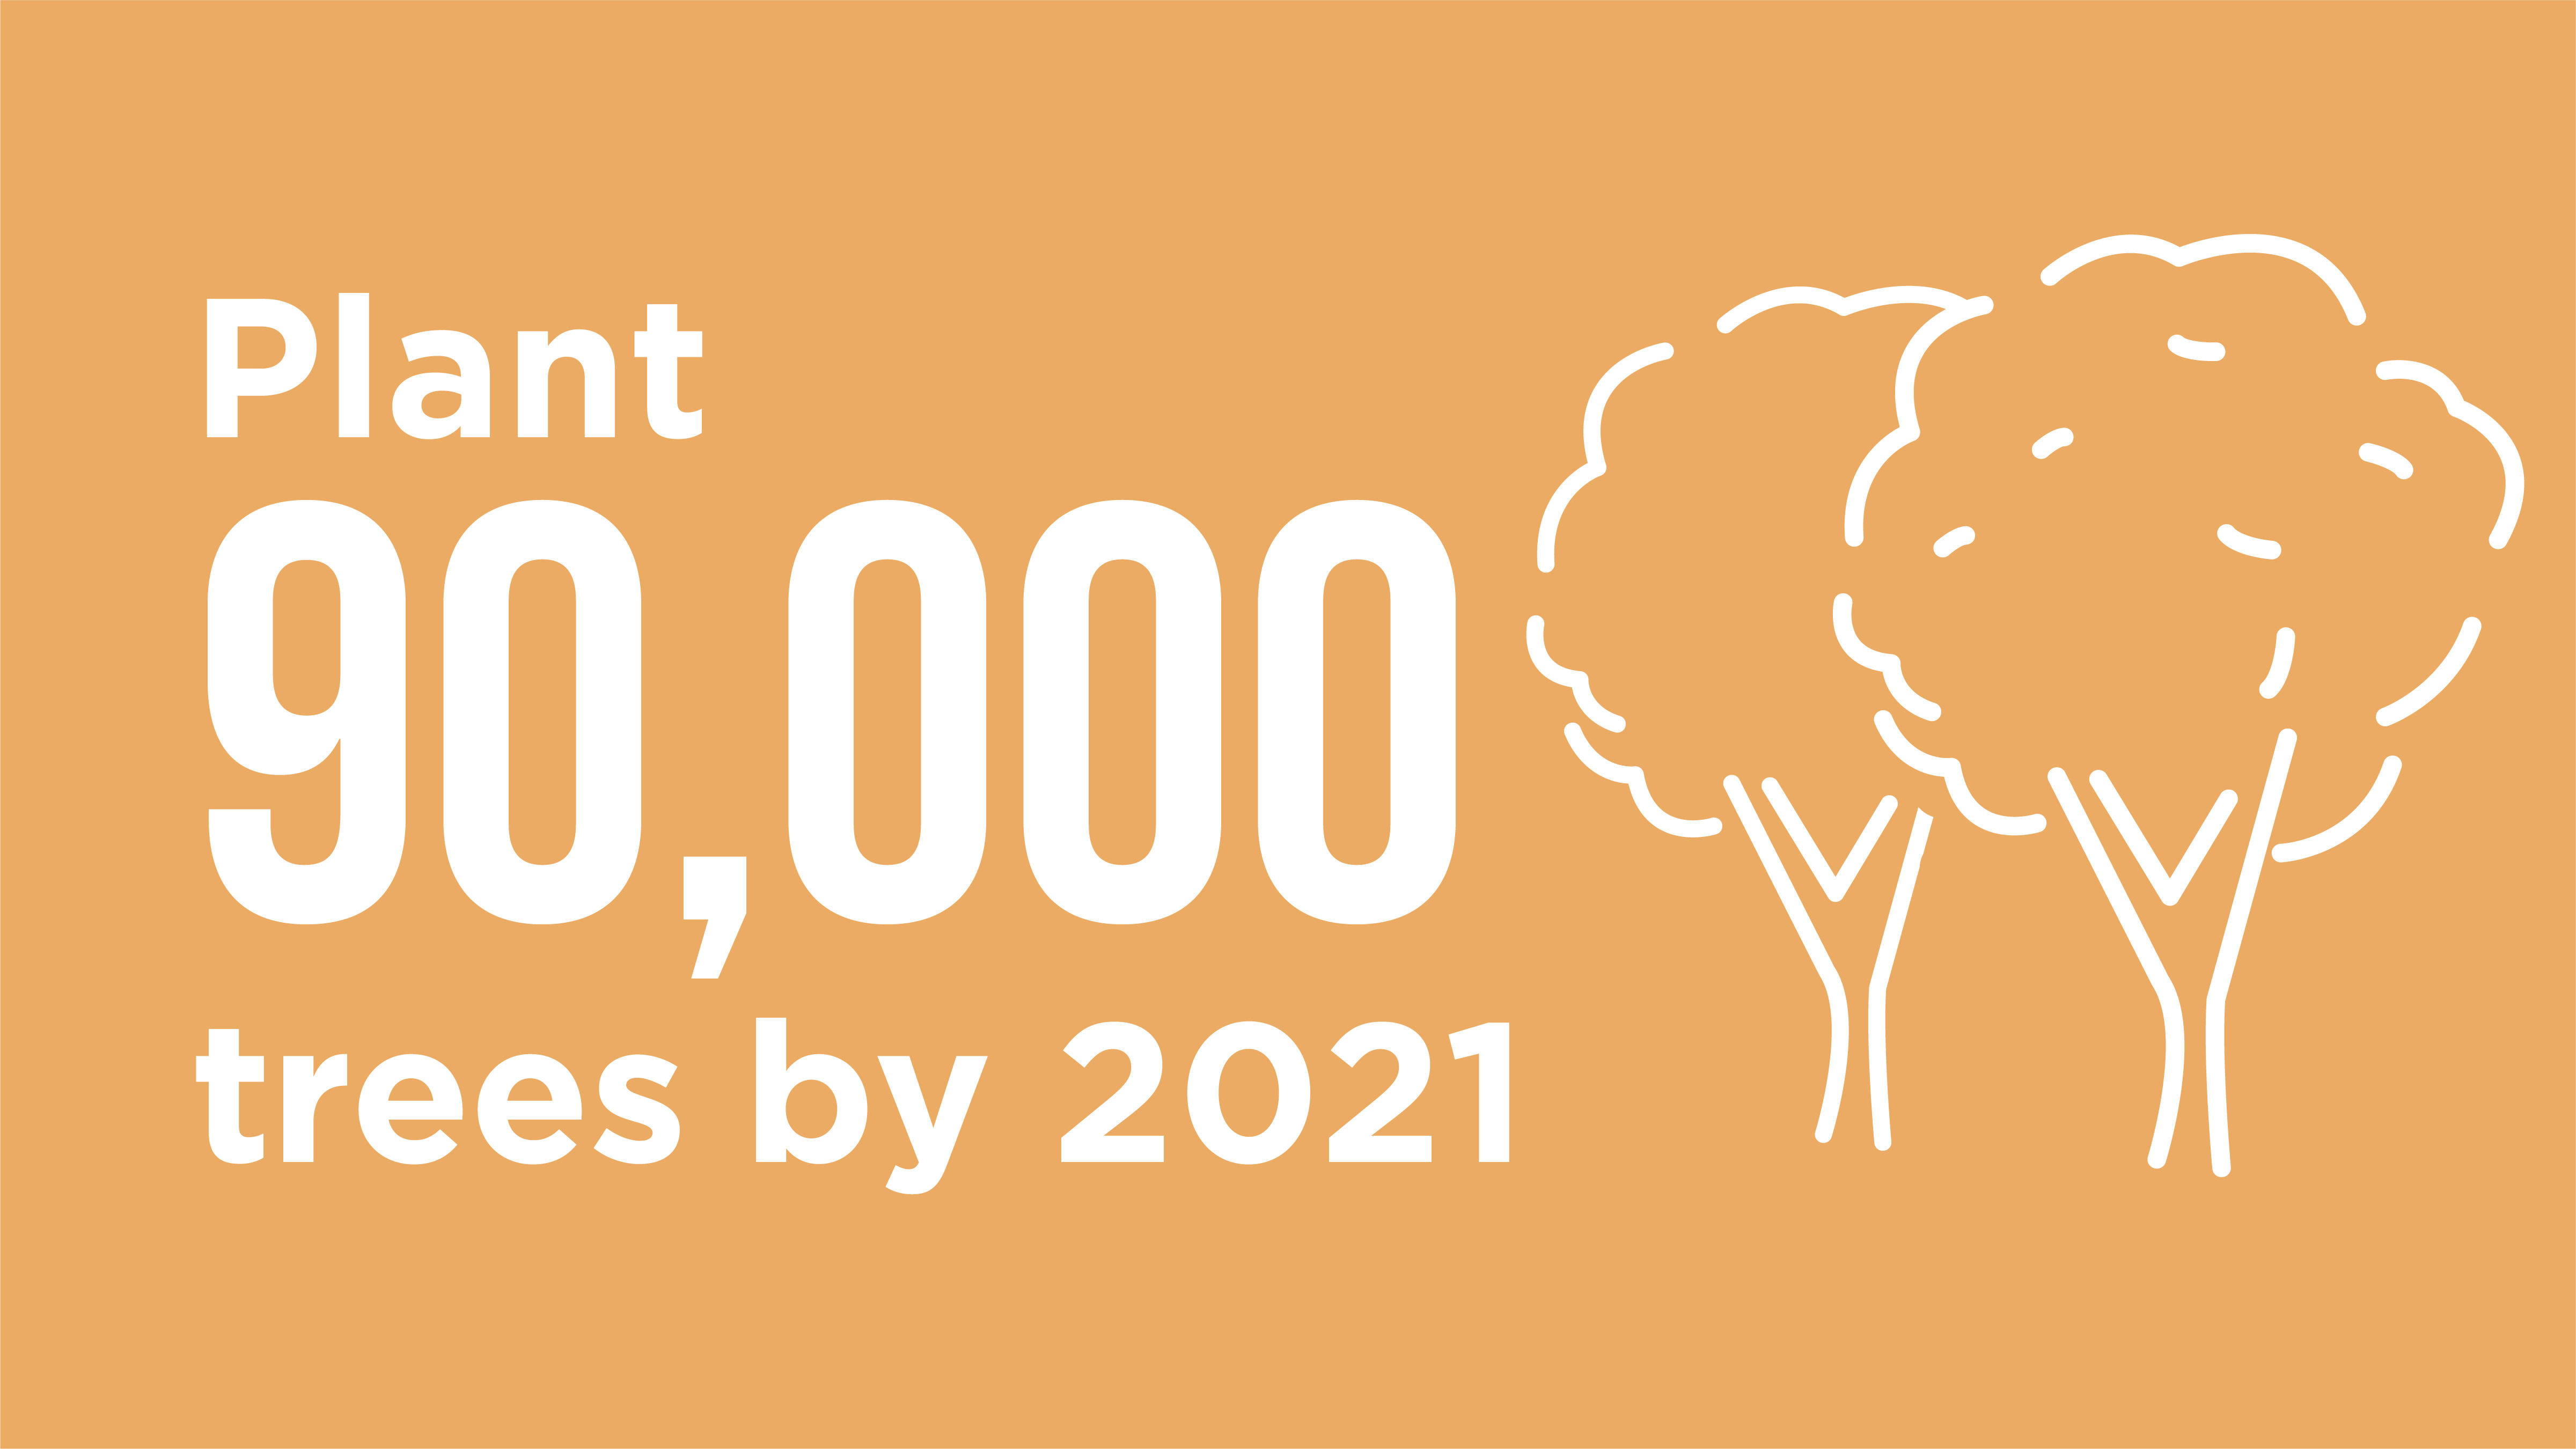 Plant 90,000 trees by 2021